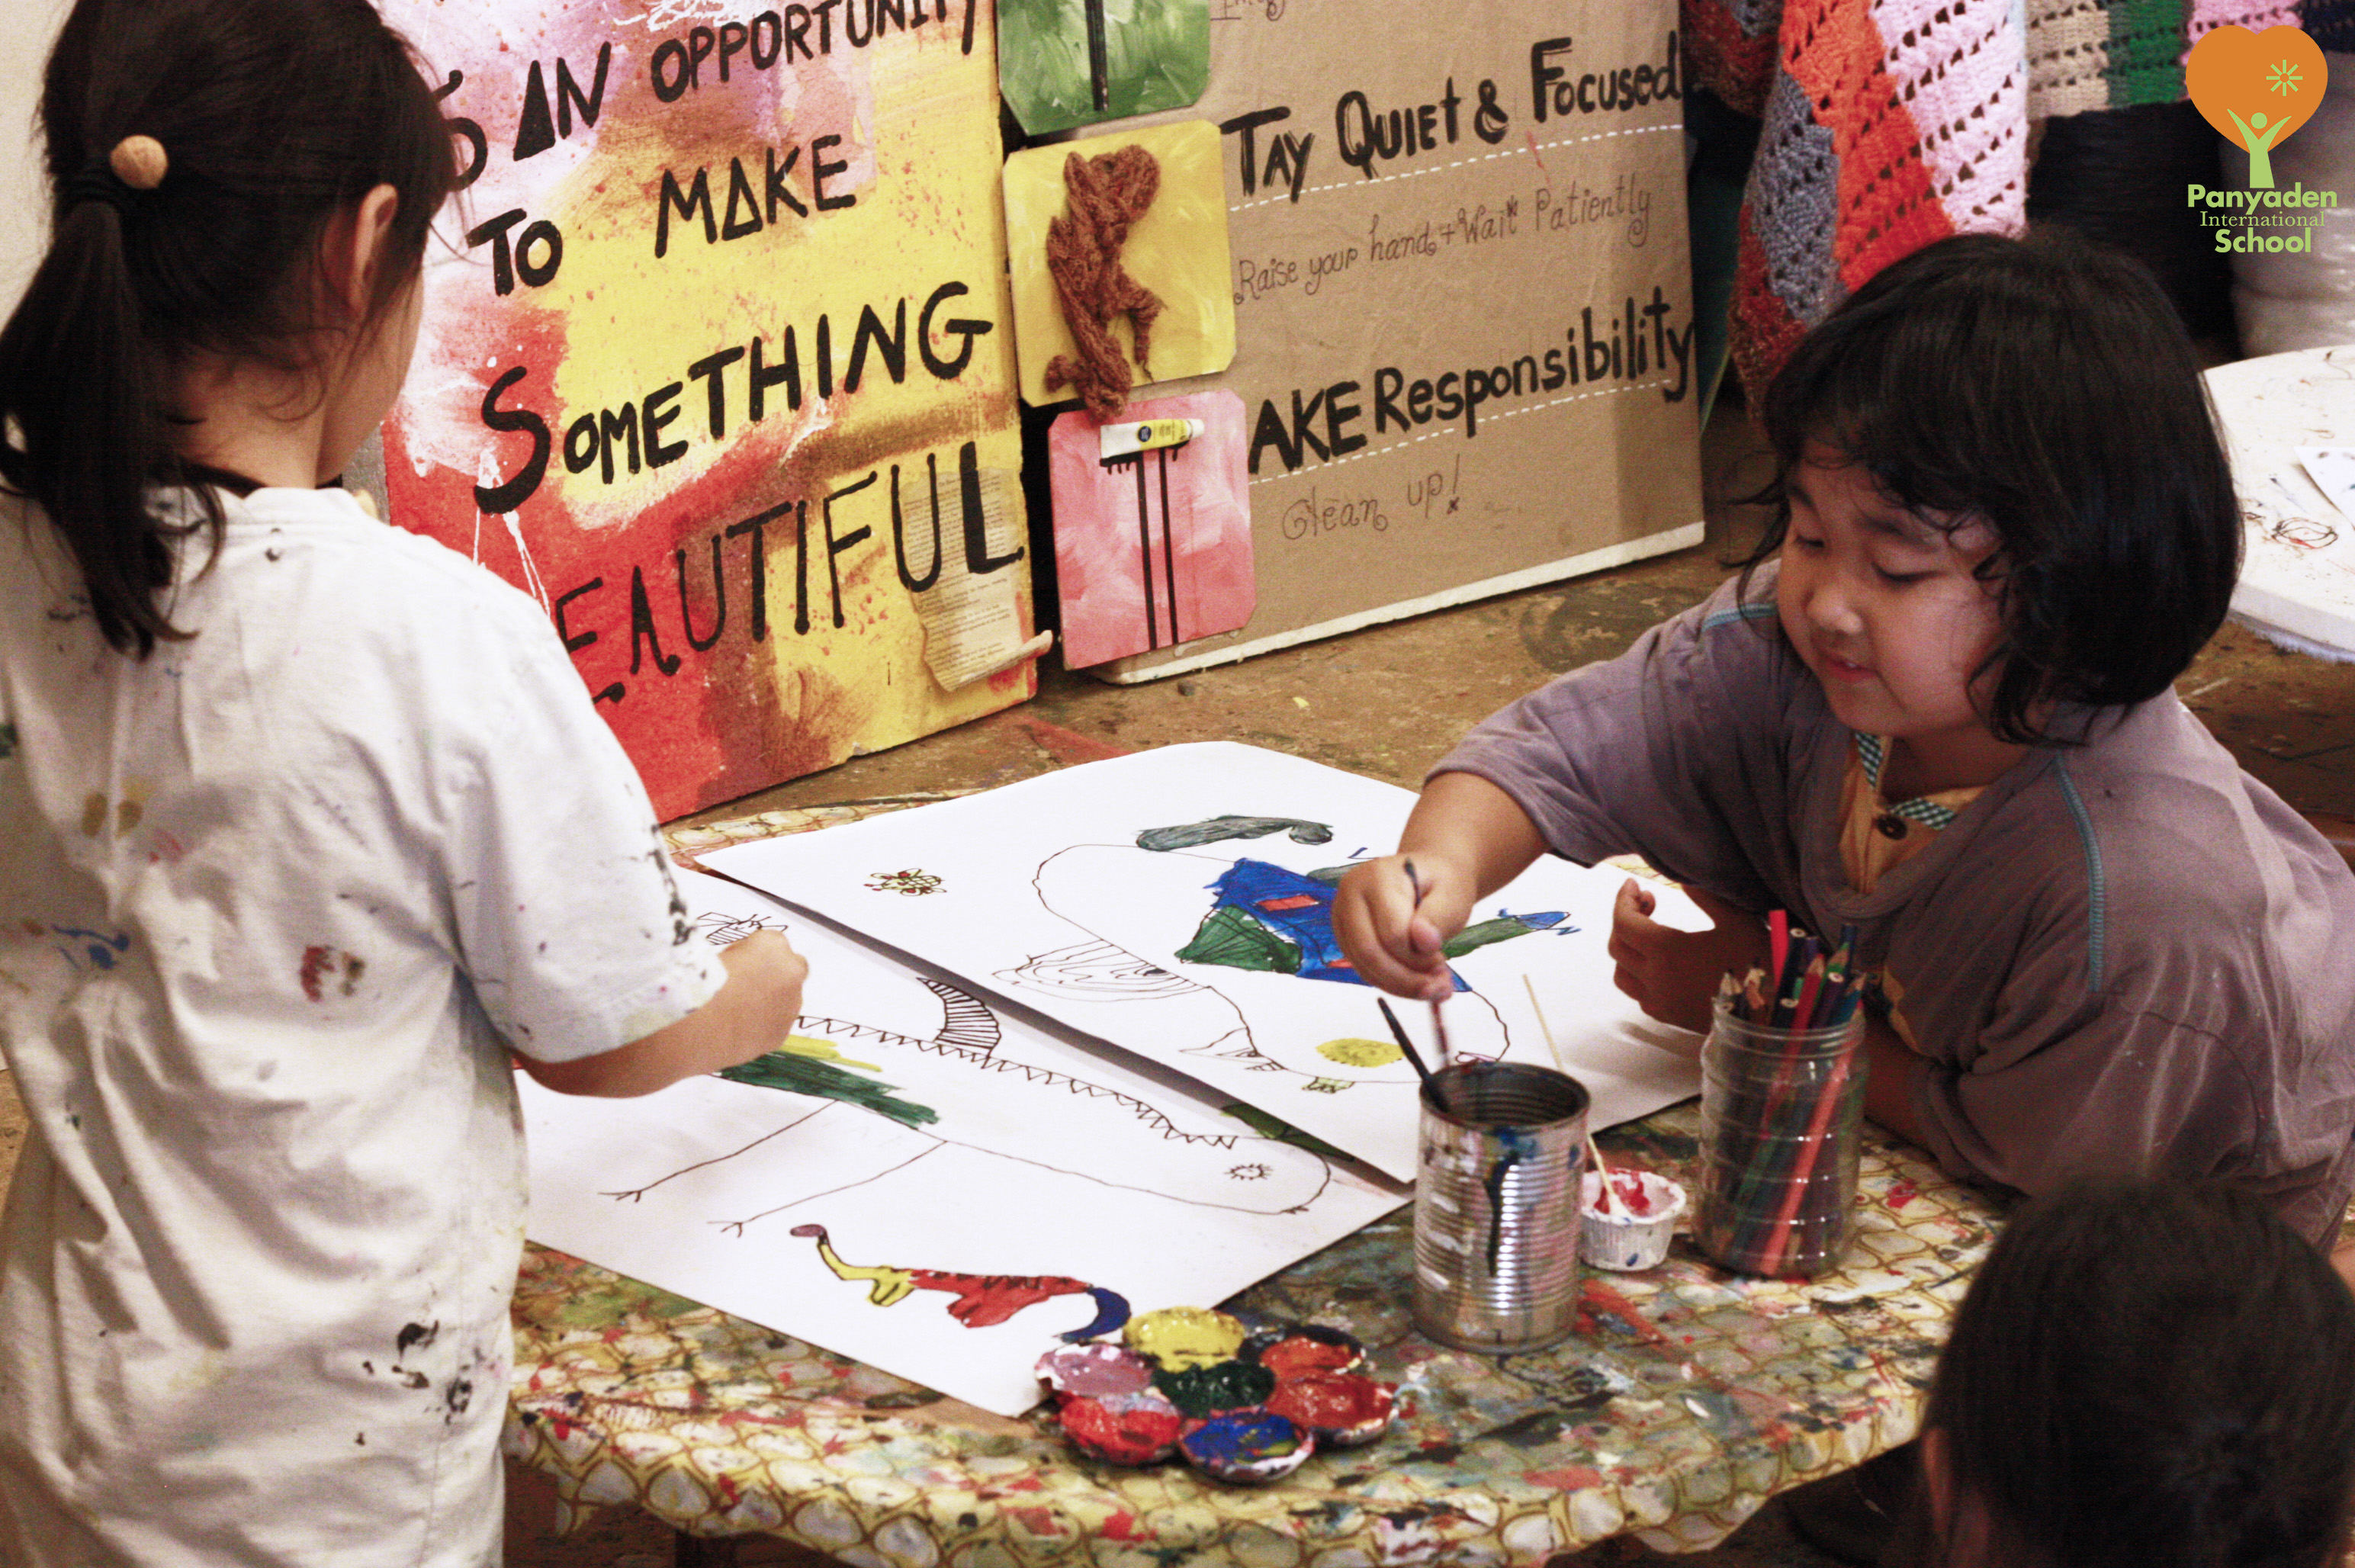 Panyaden students enjoy art during Exhibition Unit class